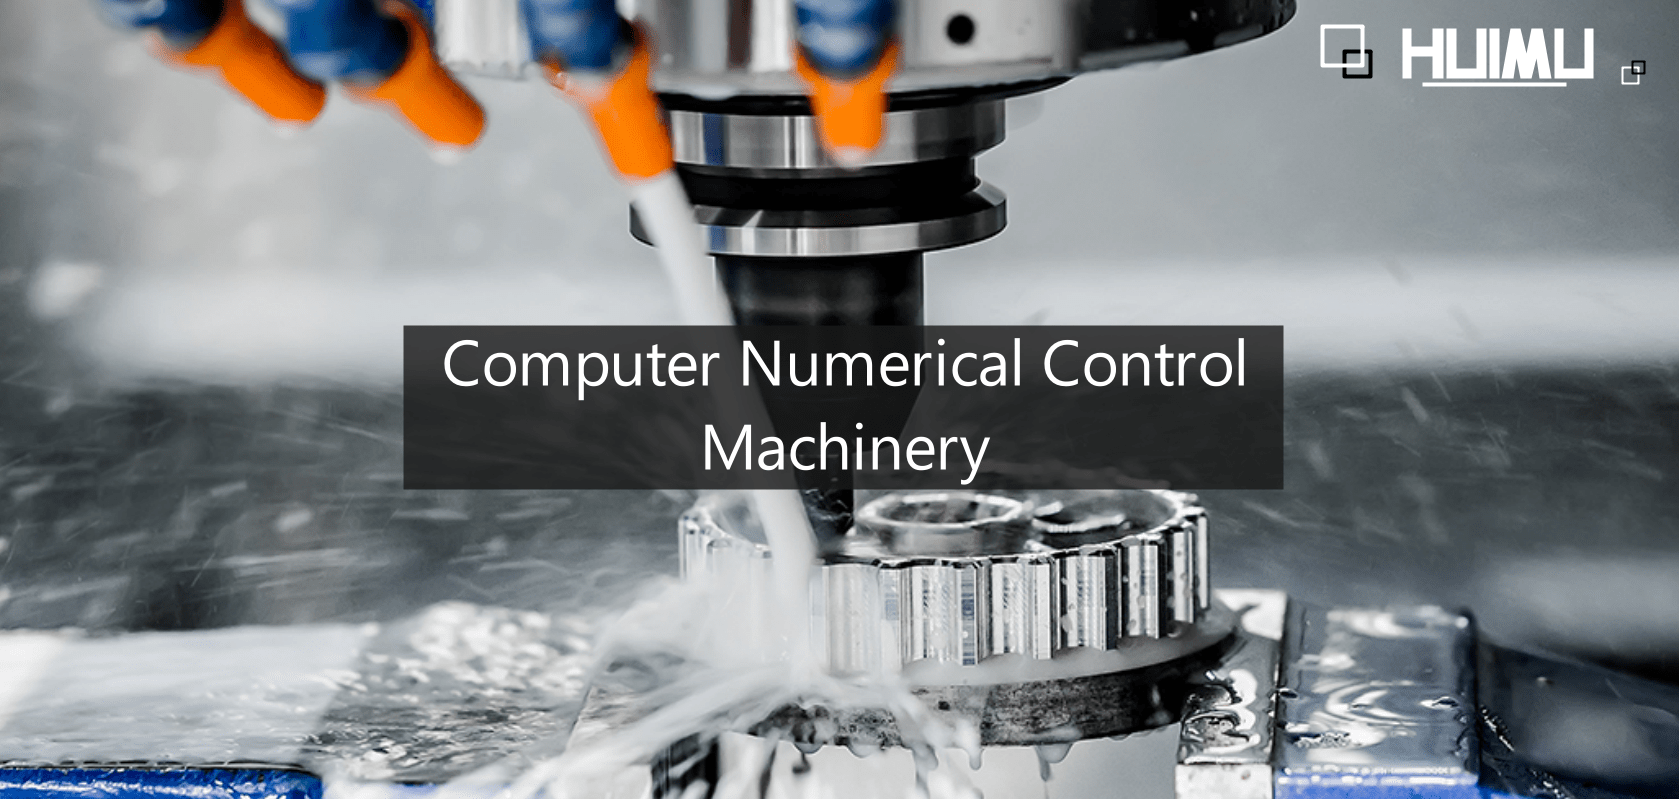 Many traditional mechanical relays in Computer Numerical Control machinery (CNC machine) are gradually being replaced by the solid-state relays. On account of the excellent durability and high sensitivity abilities, the solid state relays are applied to ensure the high precision and high quality of CNC machining. In the servo system of CNC machine, the solid state relay can receive the control signal continuously, and control the processing machine accurately. More details via www.huimultd.com